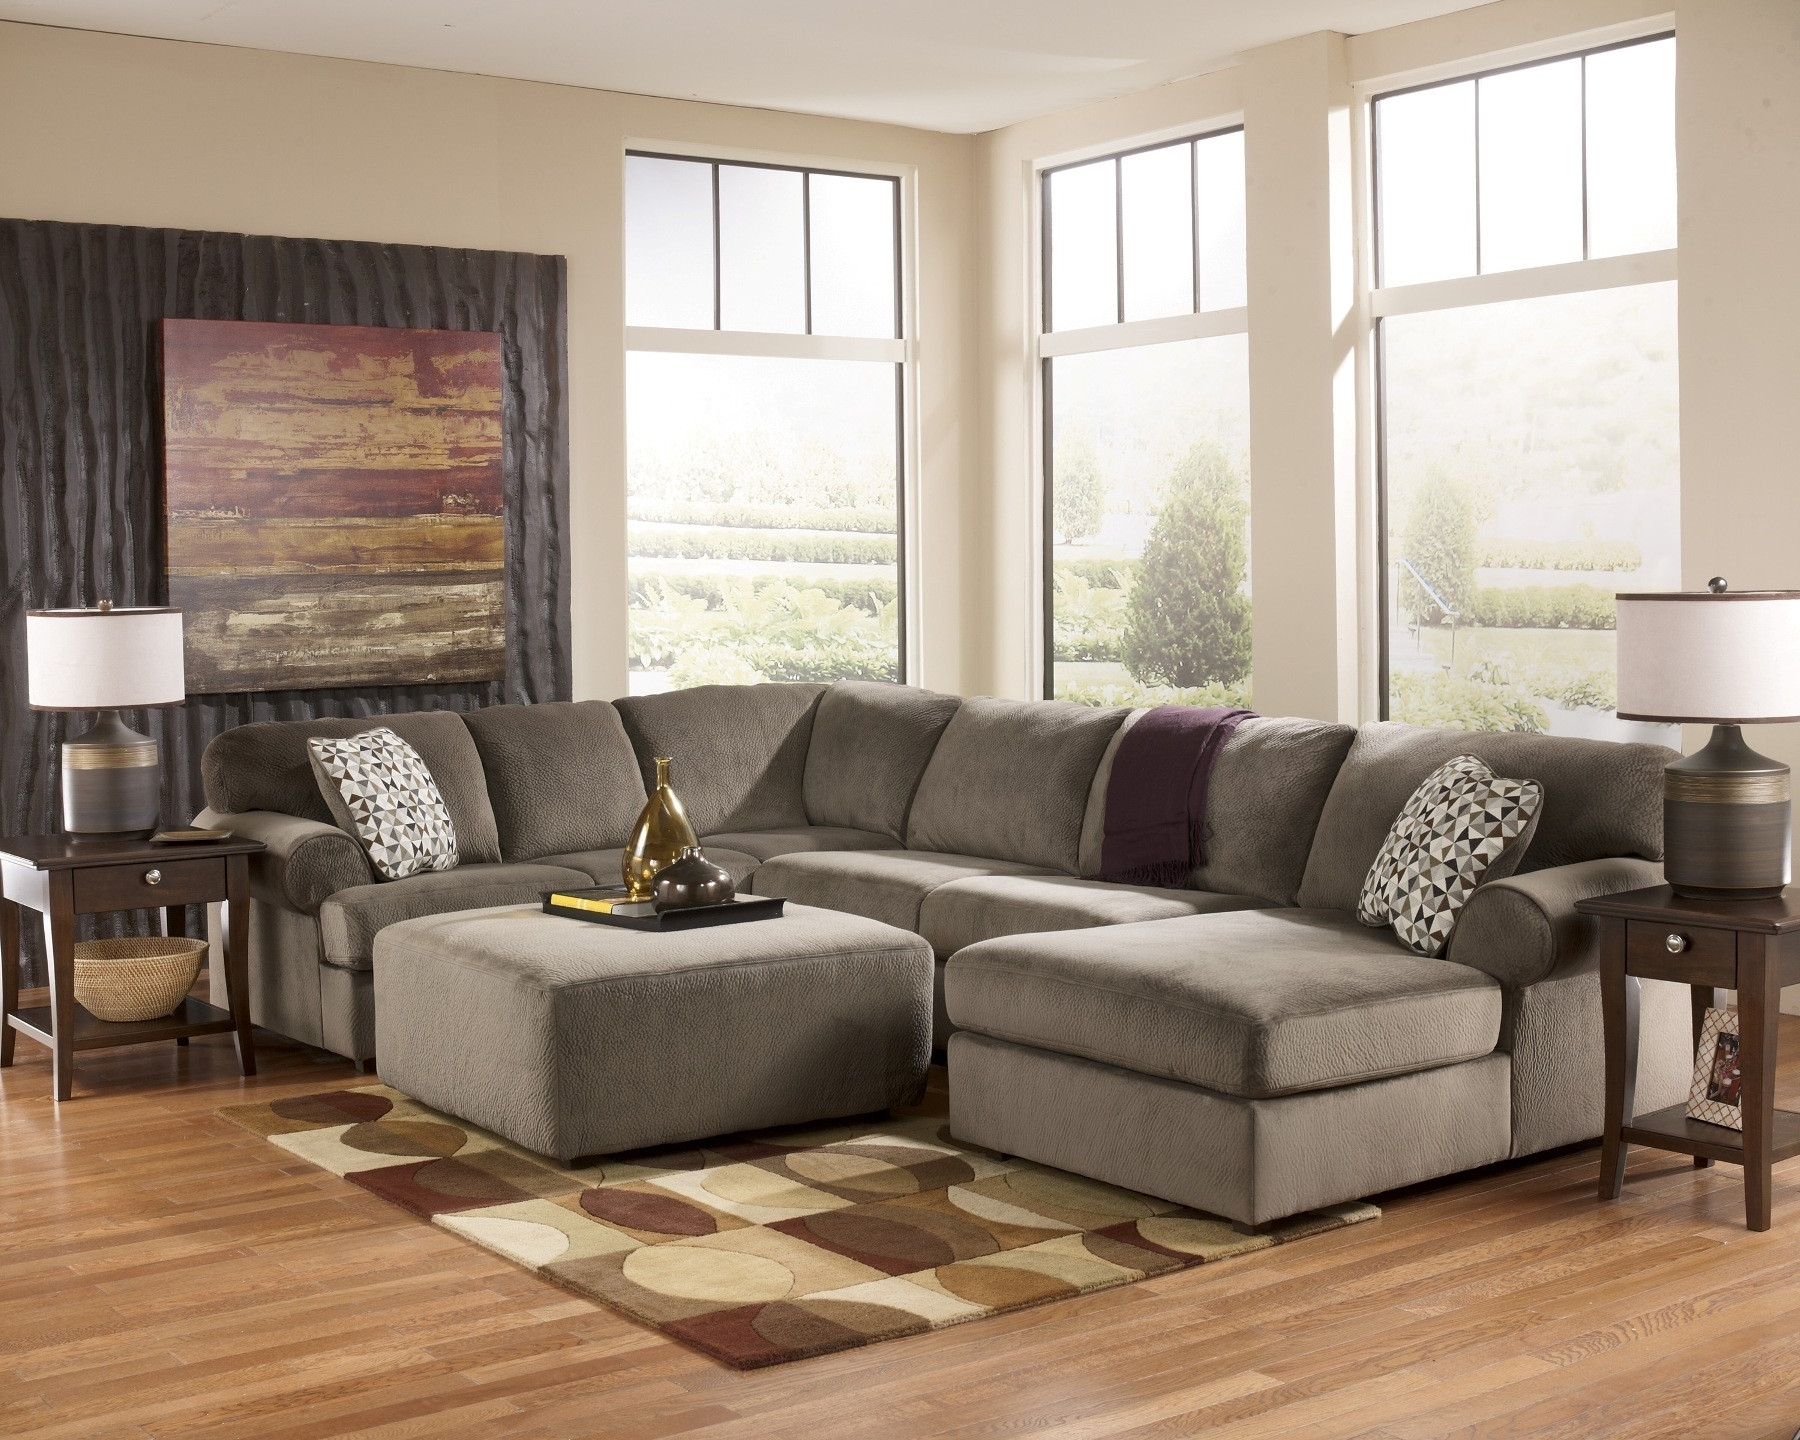 El Paso Tx Sectional Sofas Regarding Current Asc Furniture – El Paso, Tx (View 3 of 15)